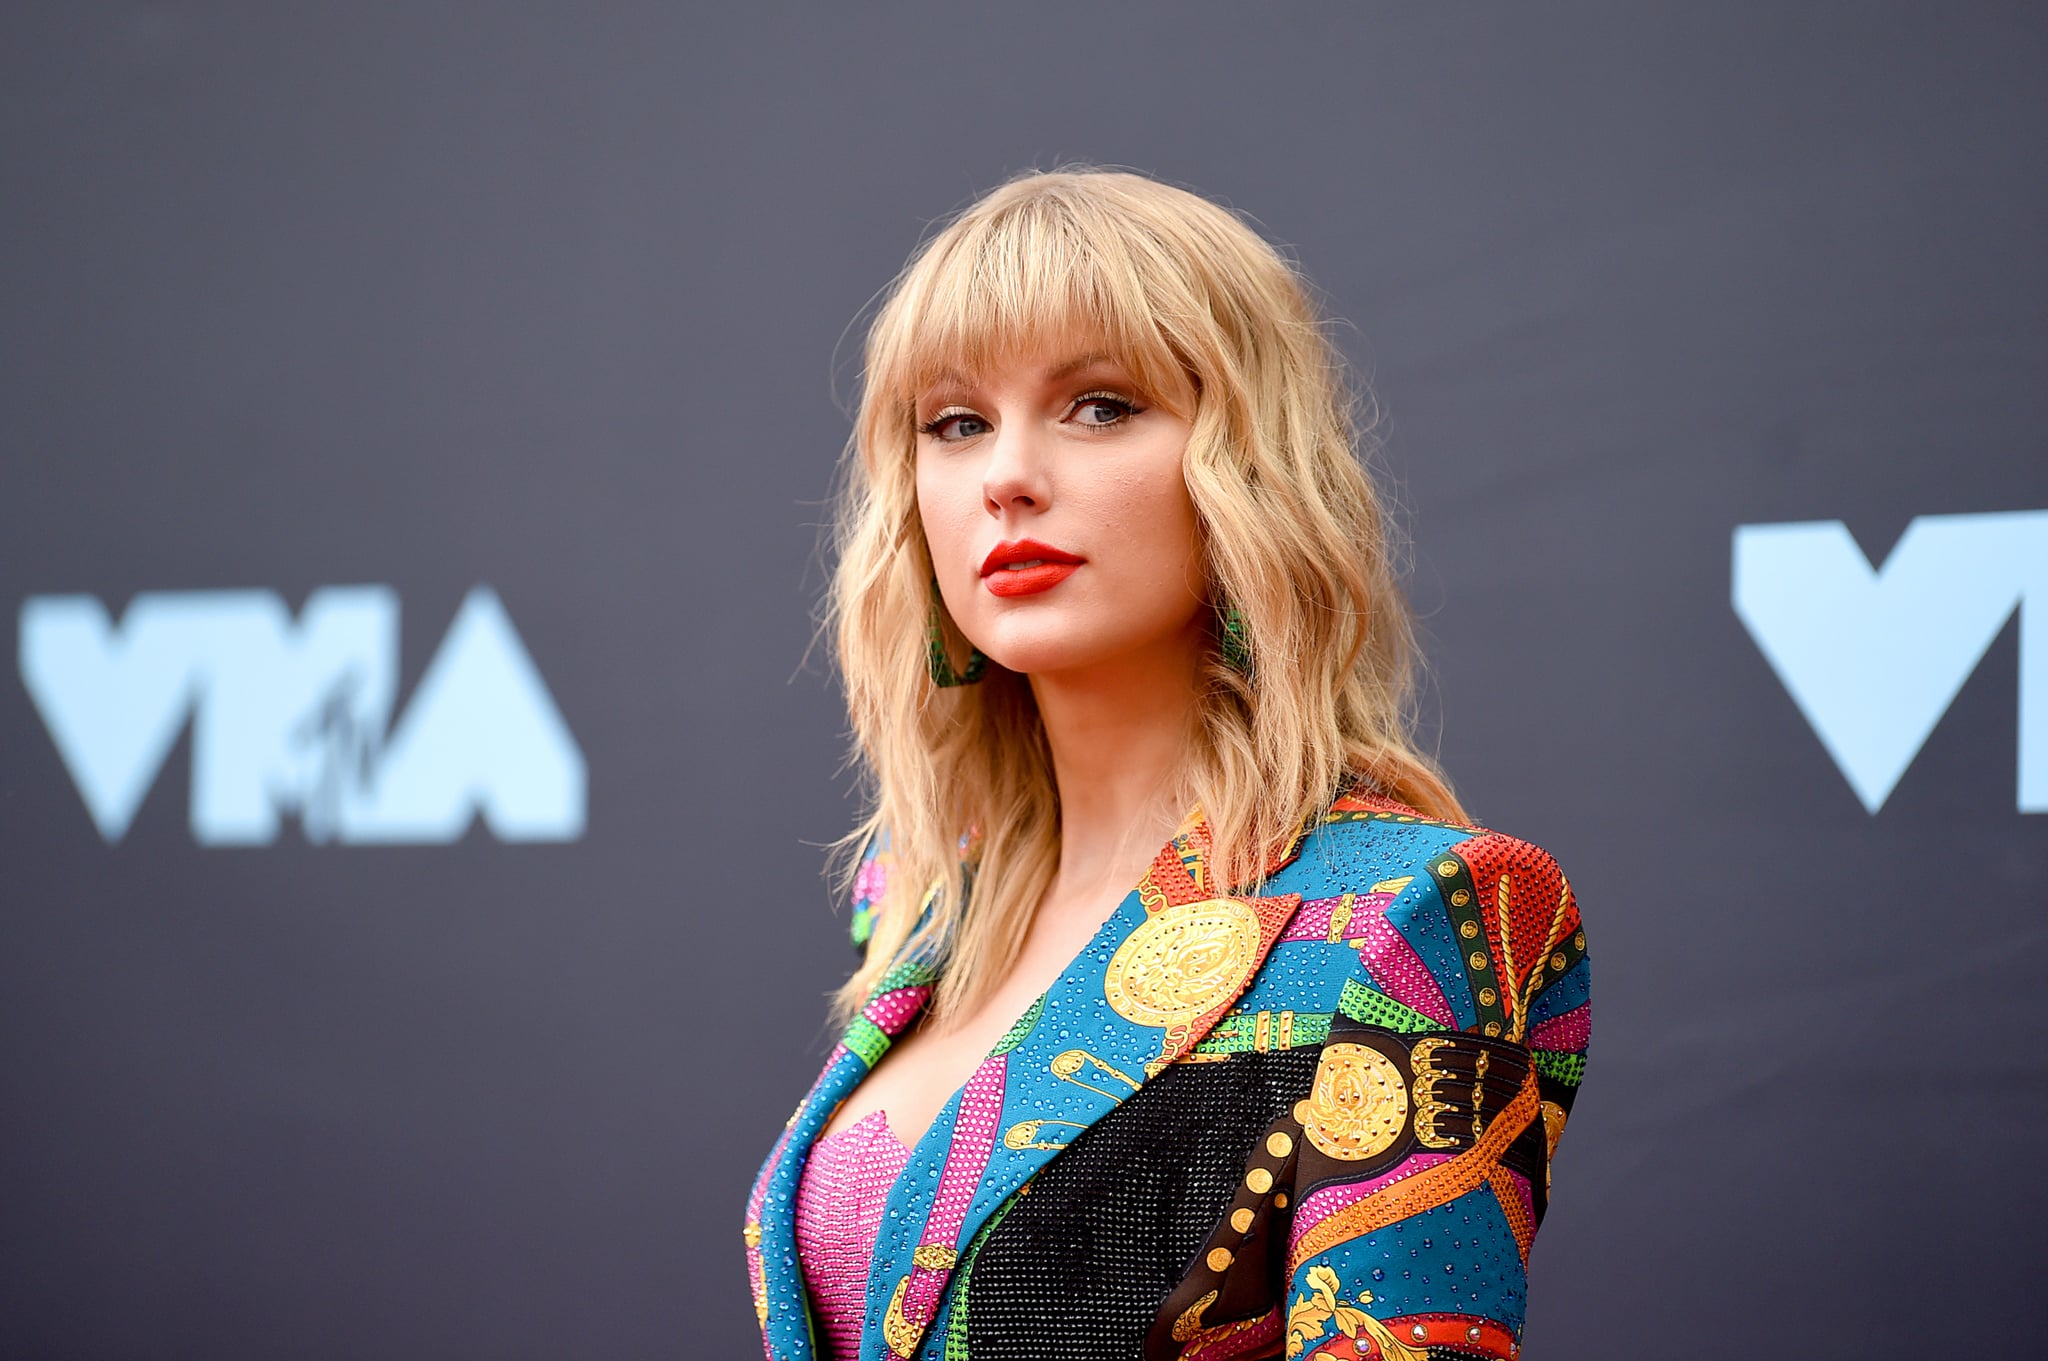 NEWARK, NEW JERSEY - AUGUST 26: Taylor Swift attends the 2019 MTV Video Music Awards at Prudential Centre on August 26, 2019 in Newark, New Jersey. (Photo by Jamie McCarthy/Getty Images for MTV)